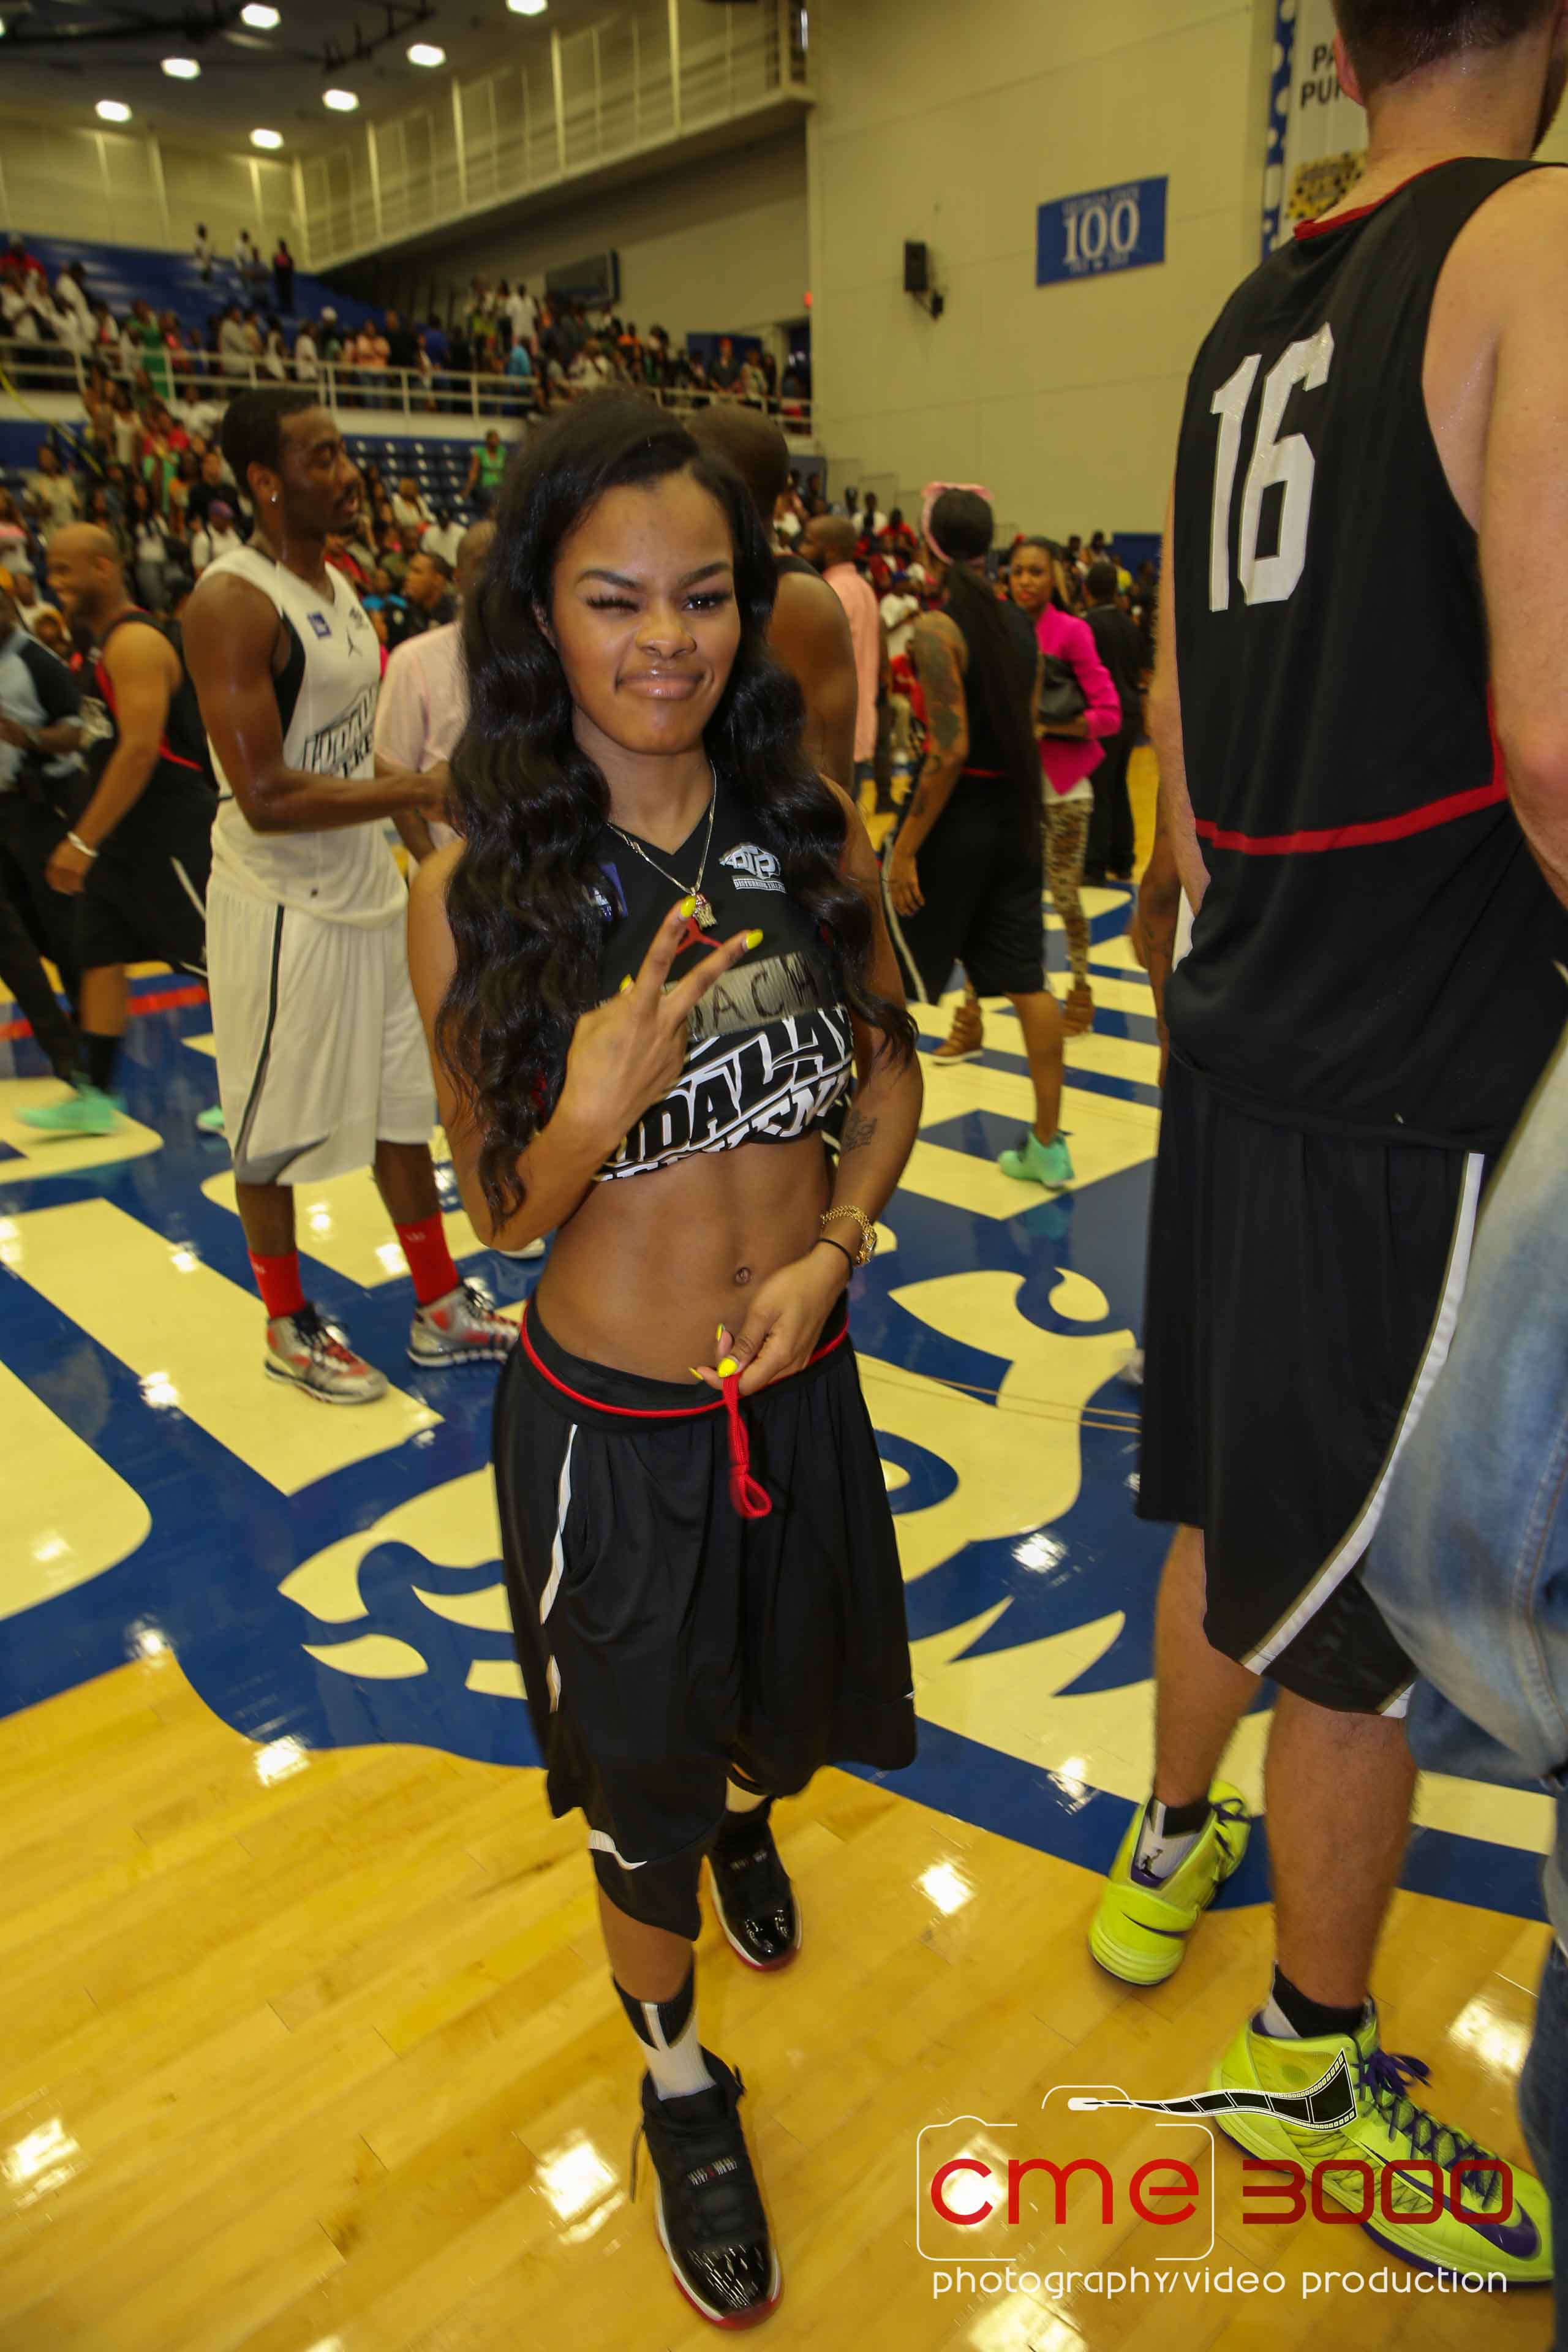 LUDA CELEB BBALL GAME 2013 058 CME 3000